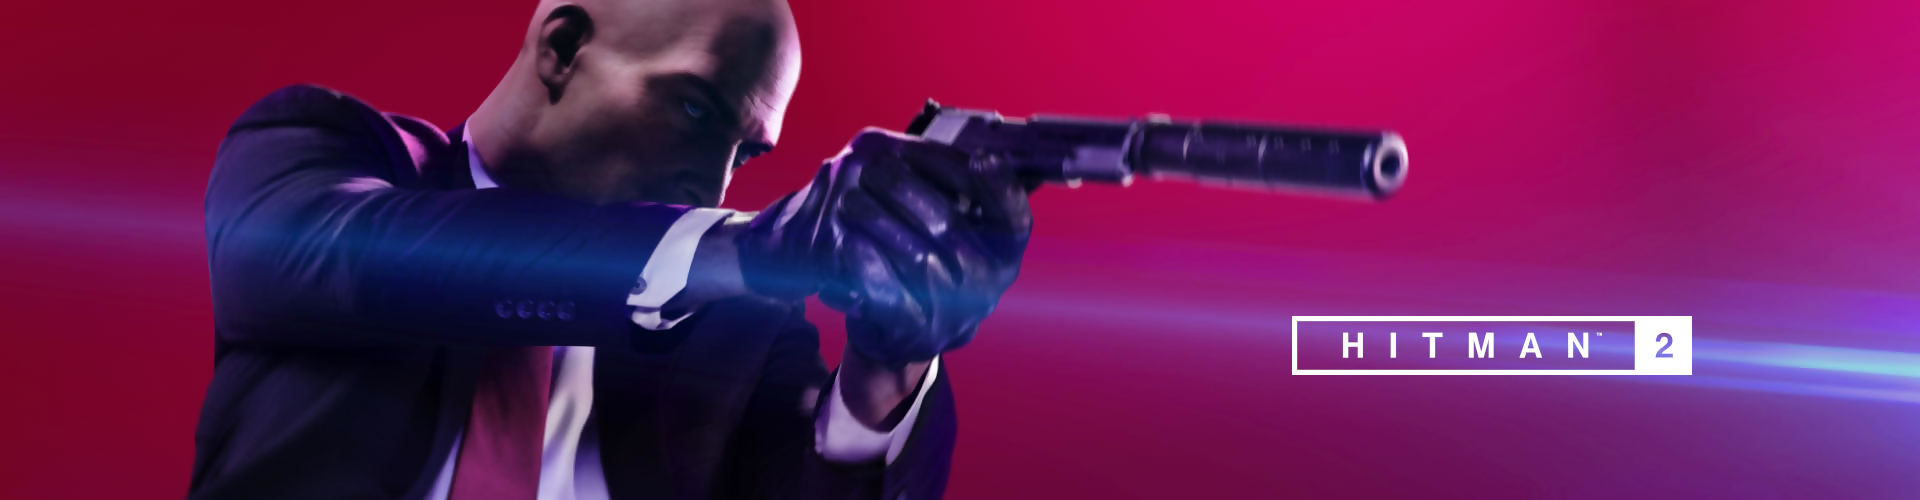 Hitman 2 - All the reviews and the European average score